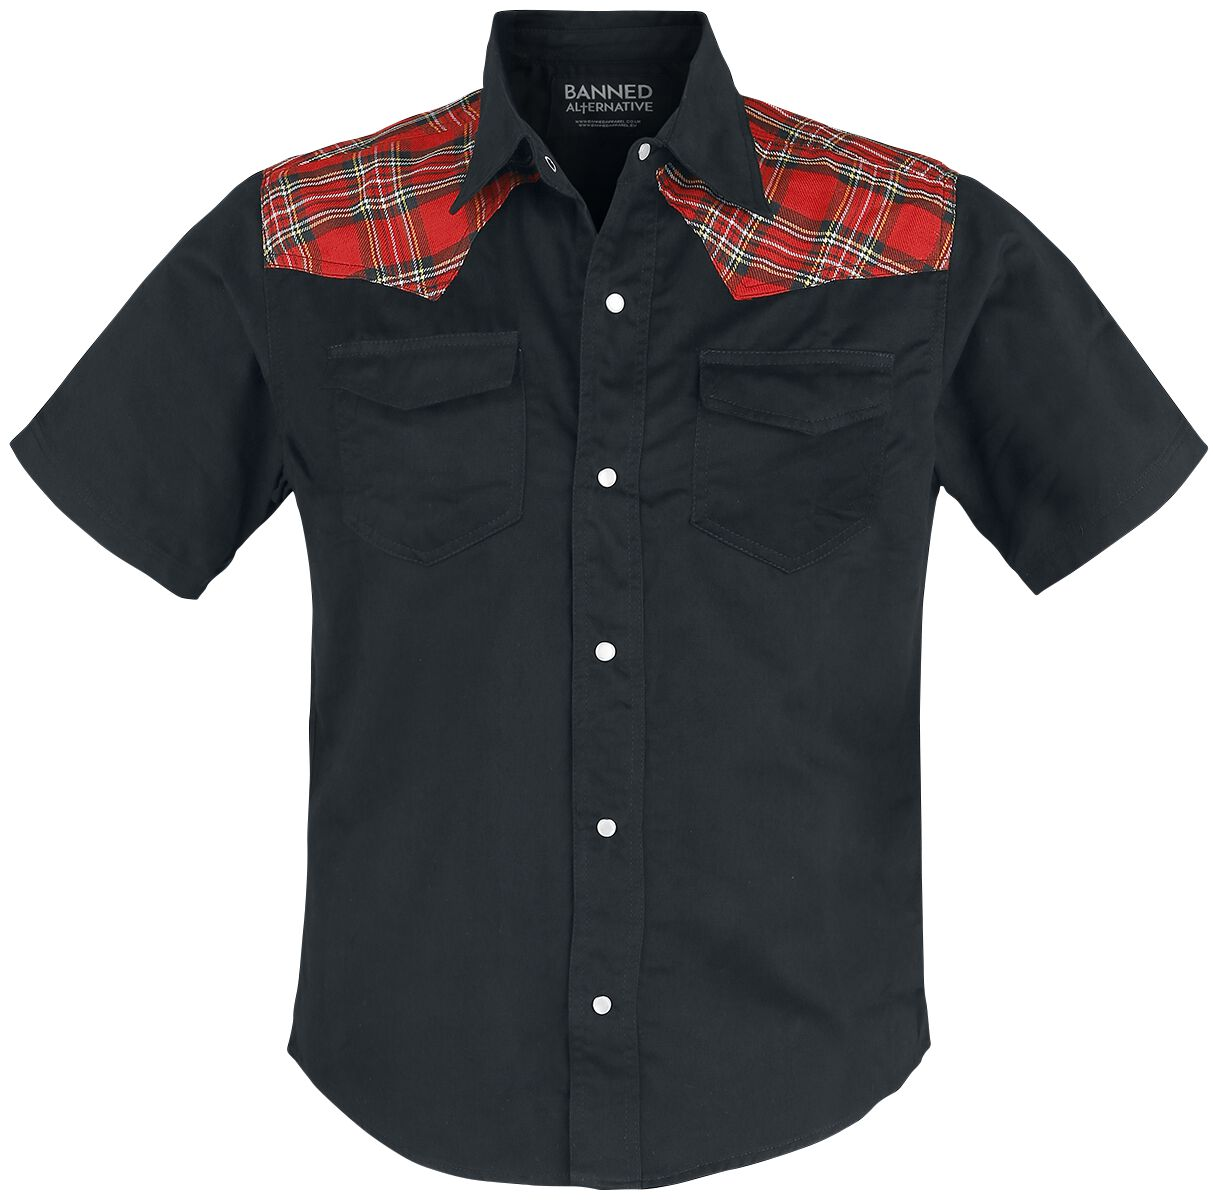 Image of Banned Alternative Tartan Shirt Camicia nero